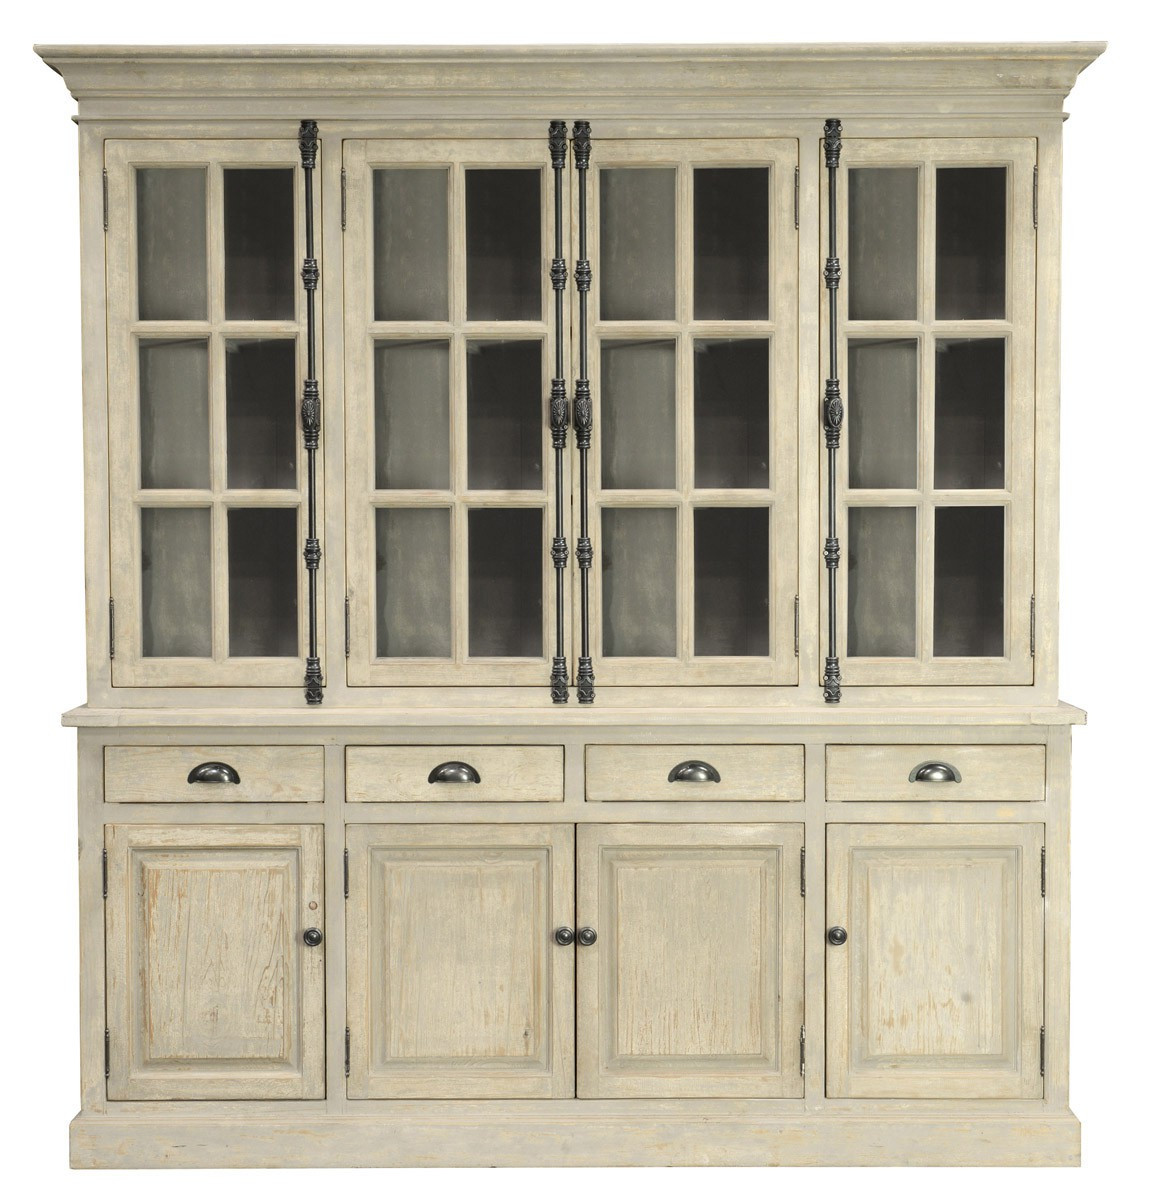 Chateau Reclaimed Wood Hutch Cabinet- Antique White